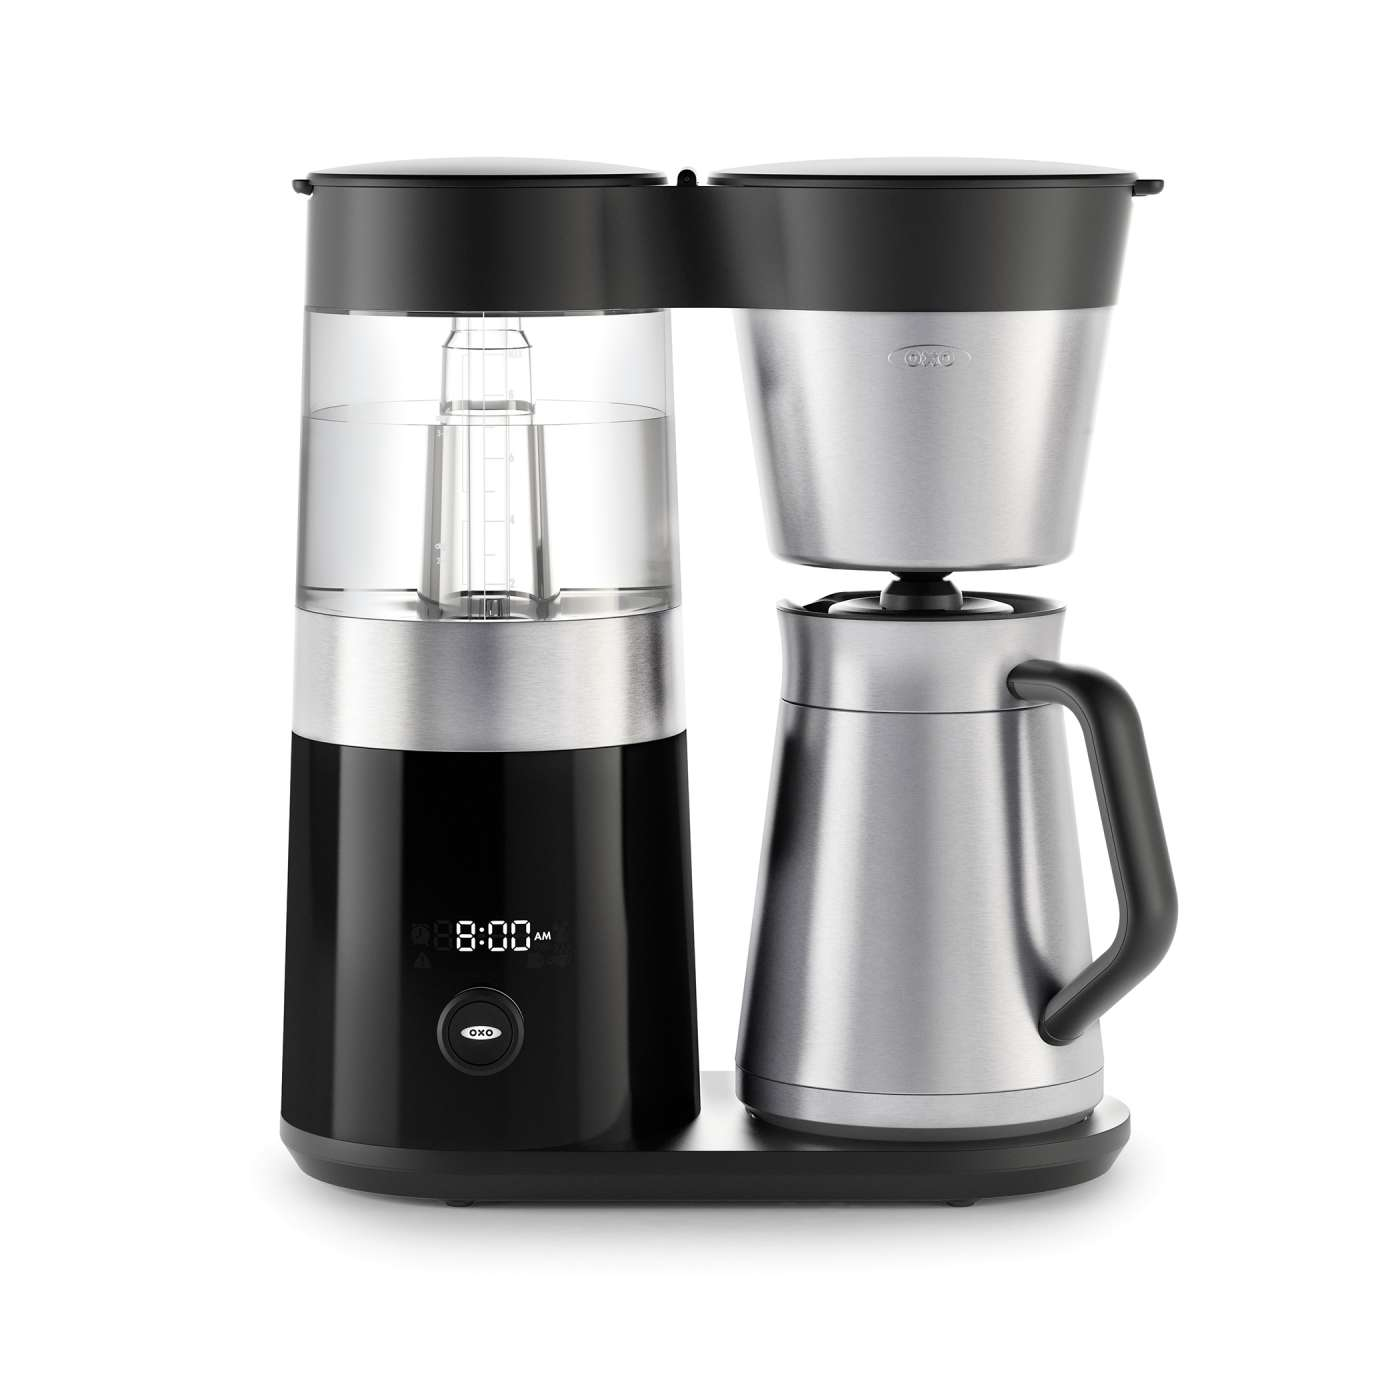 OXO On 9-Cup Coffee Brewer: An in depth review